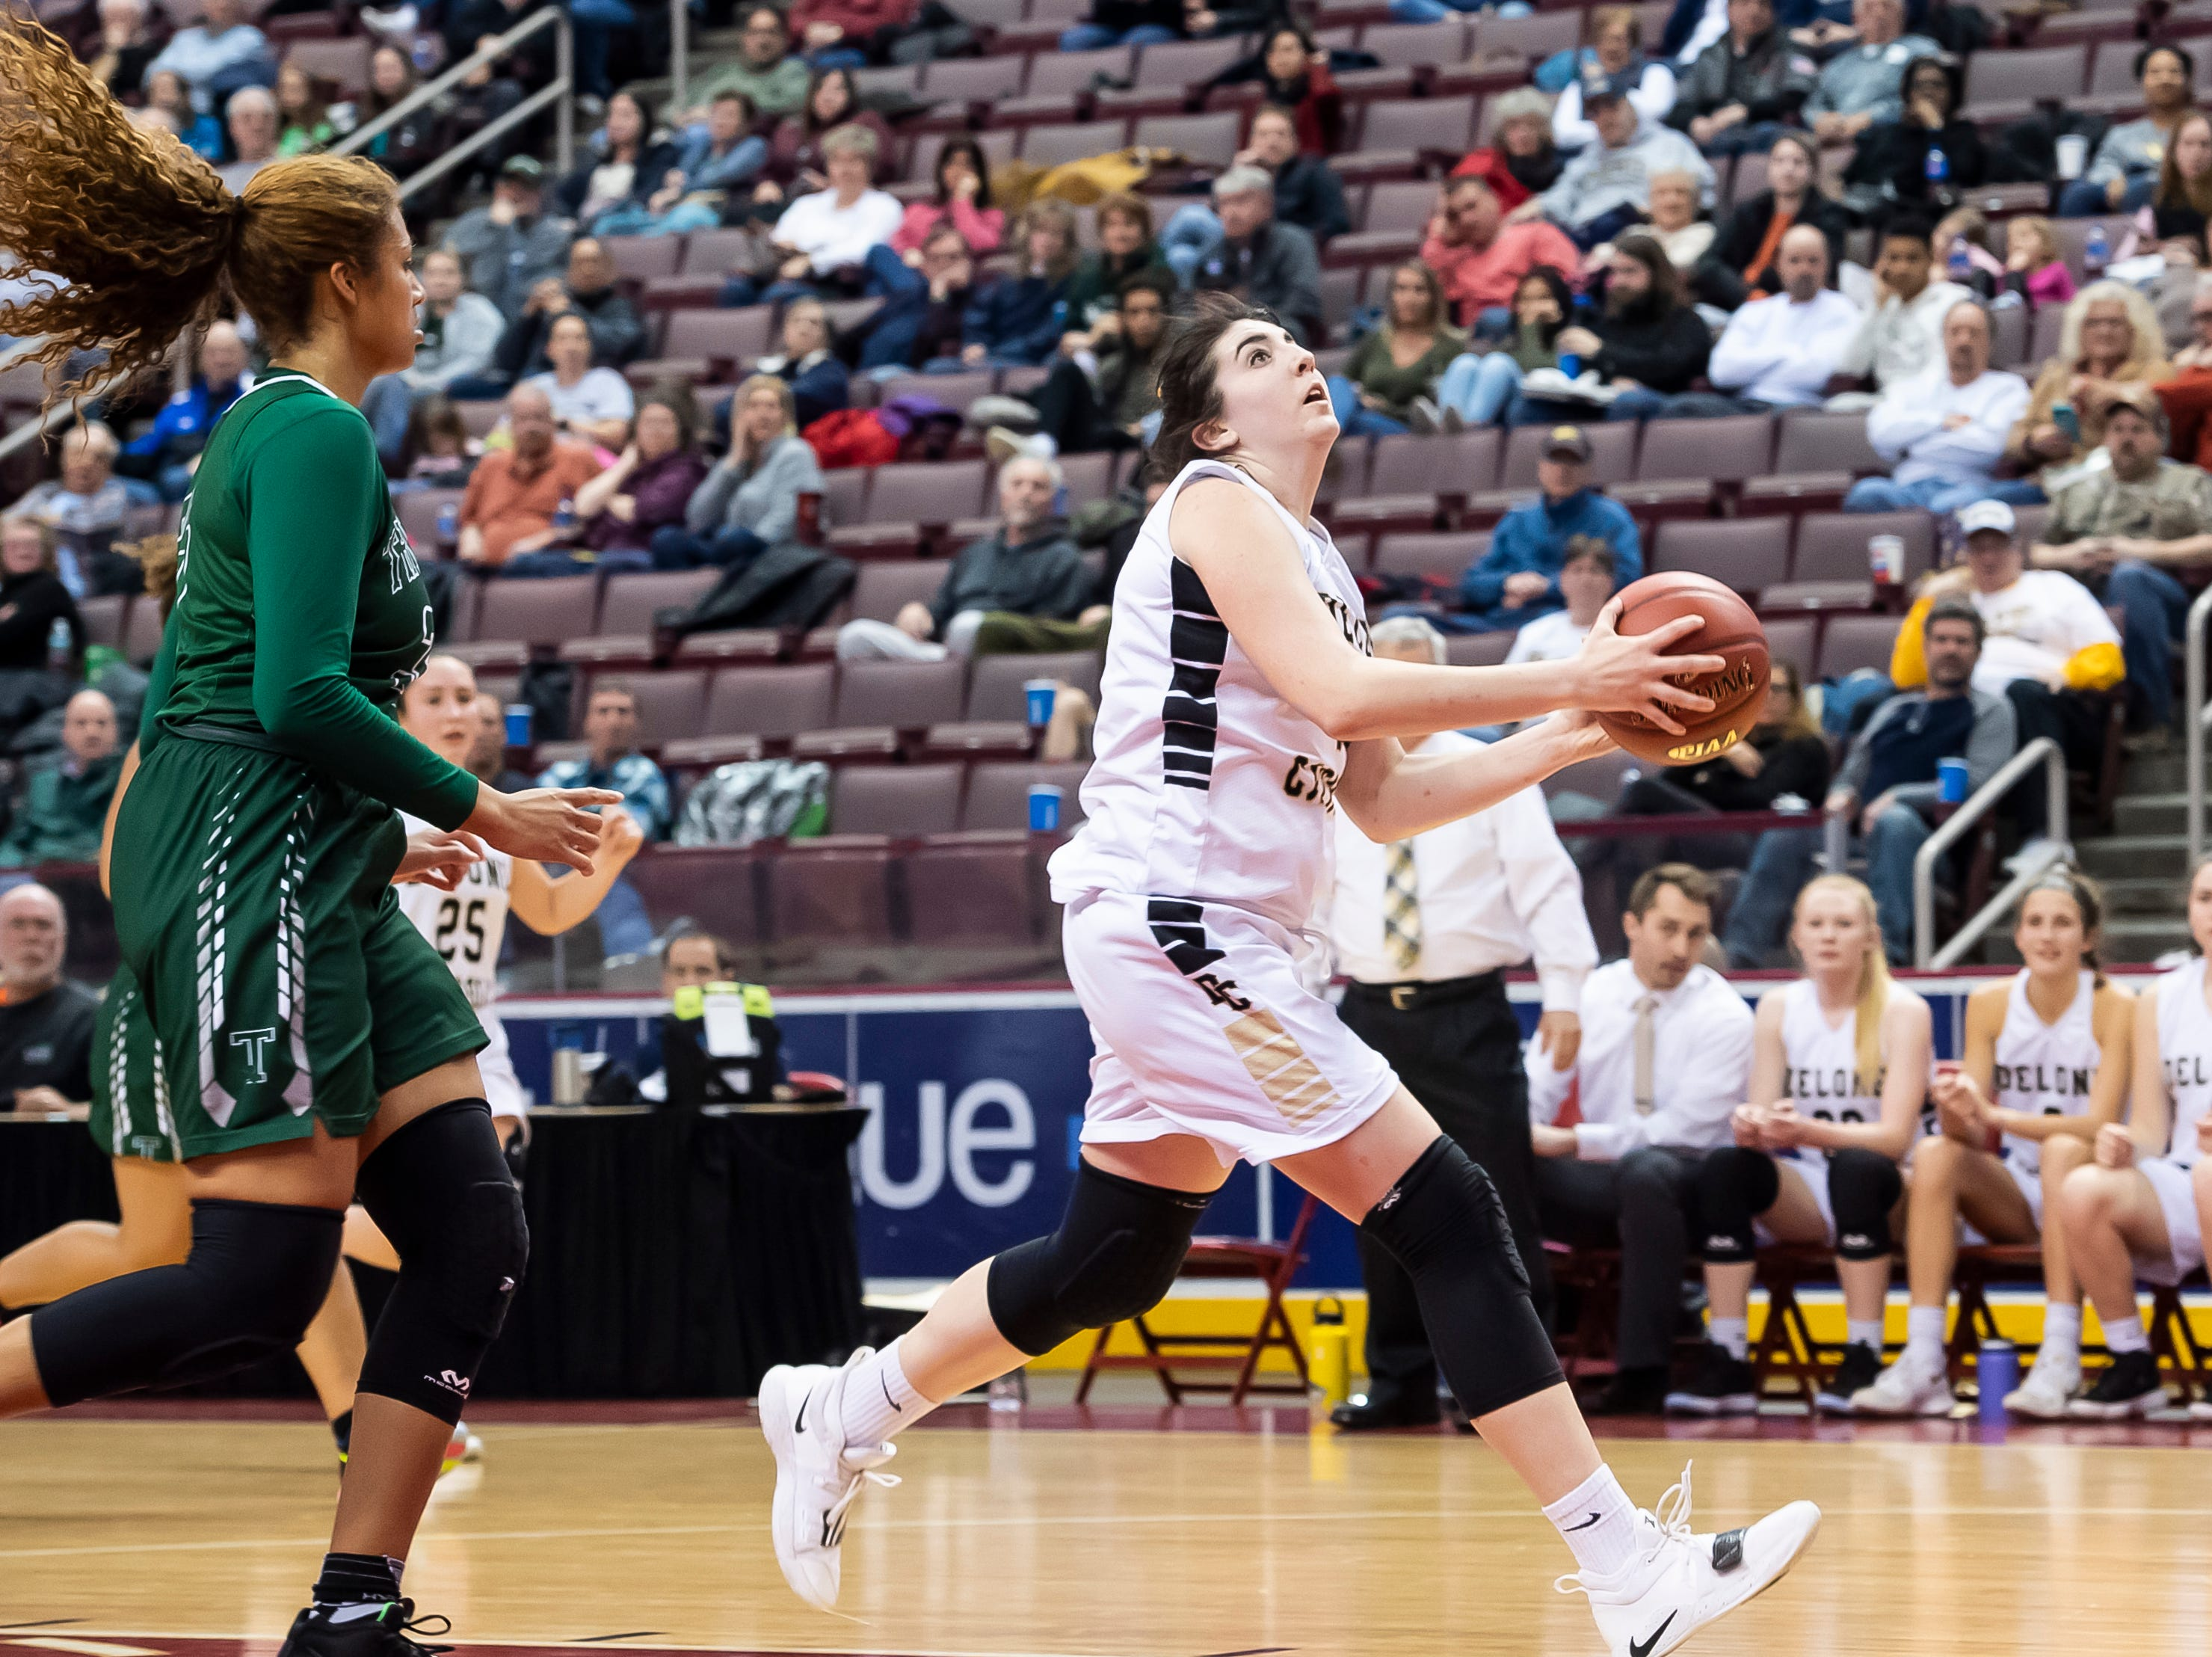 Delone Catholic's Bradi Zumbrum dribbles into the paint to shoot a layup during the District 3 3A girls championship game against Trinity at the Giant Center in Hershey Wednesday, Feb. 27, 2019. The Squirettes fell 44-33.